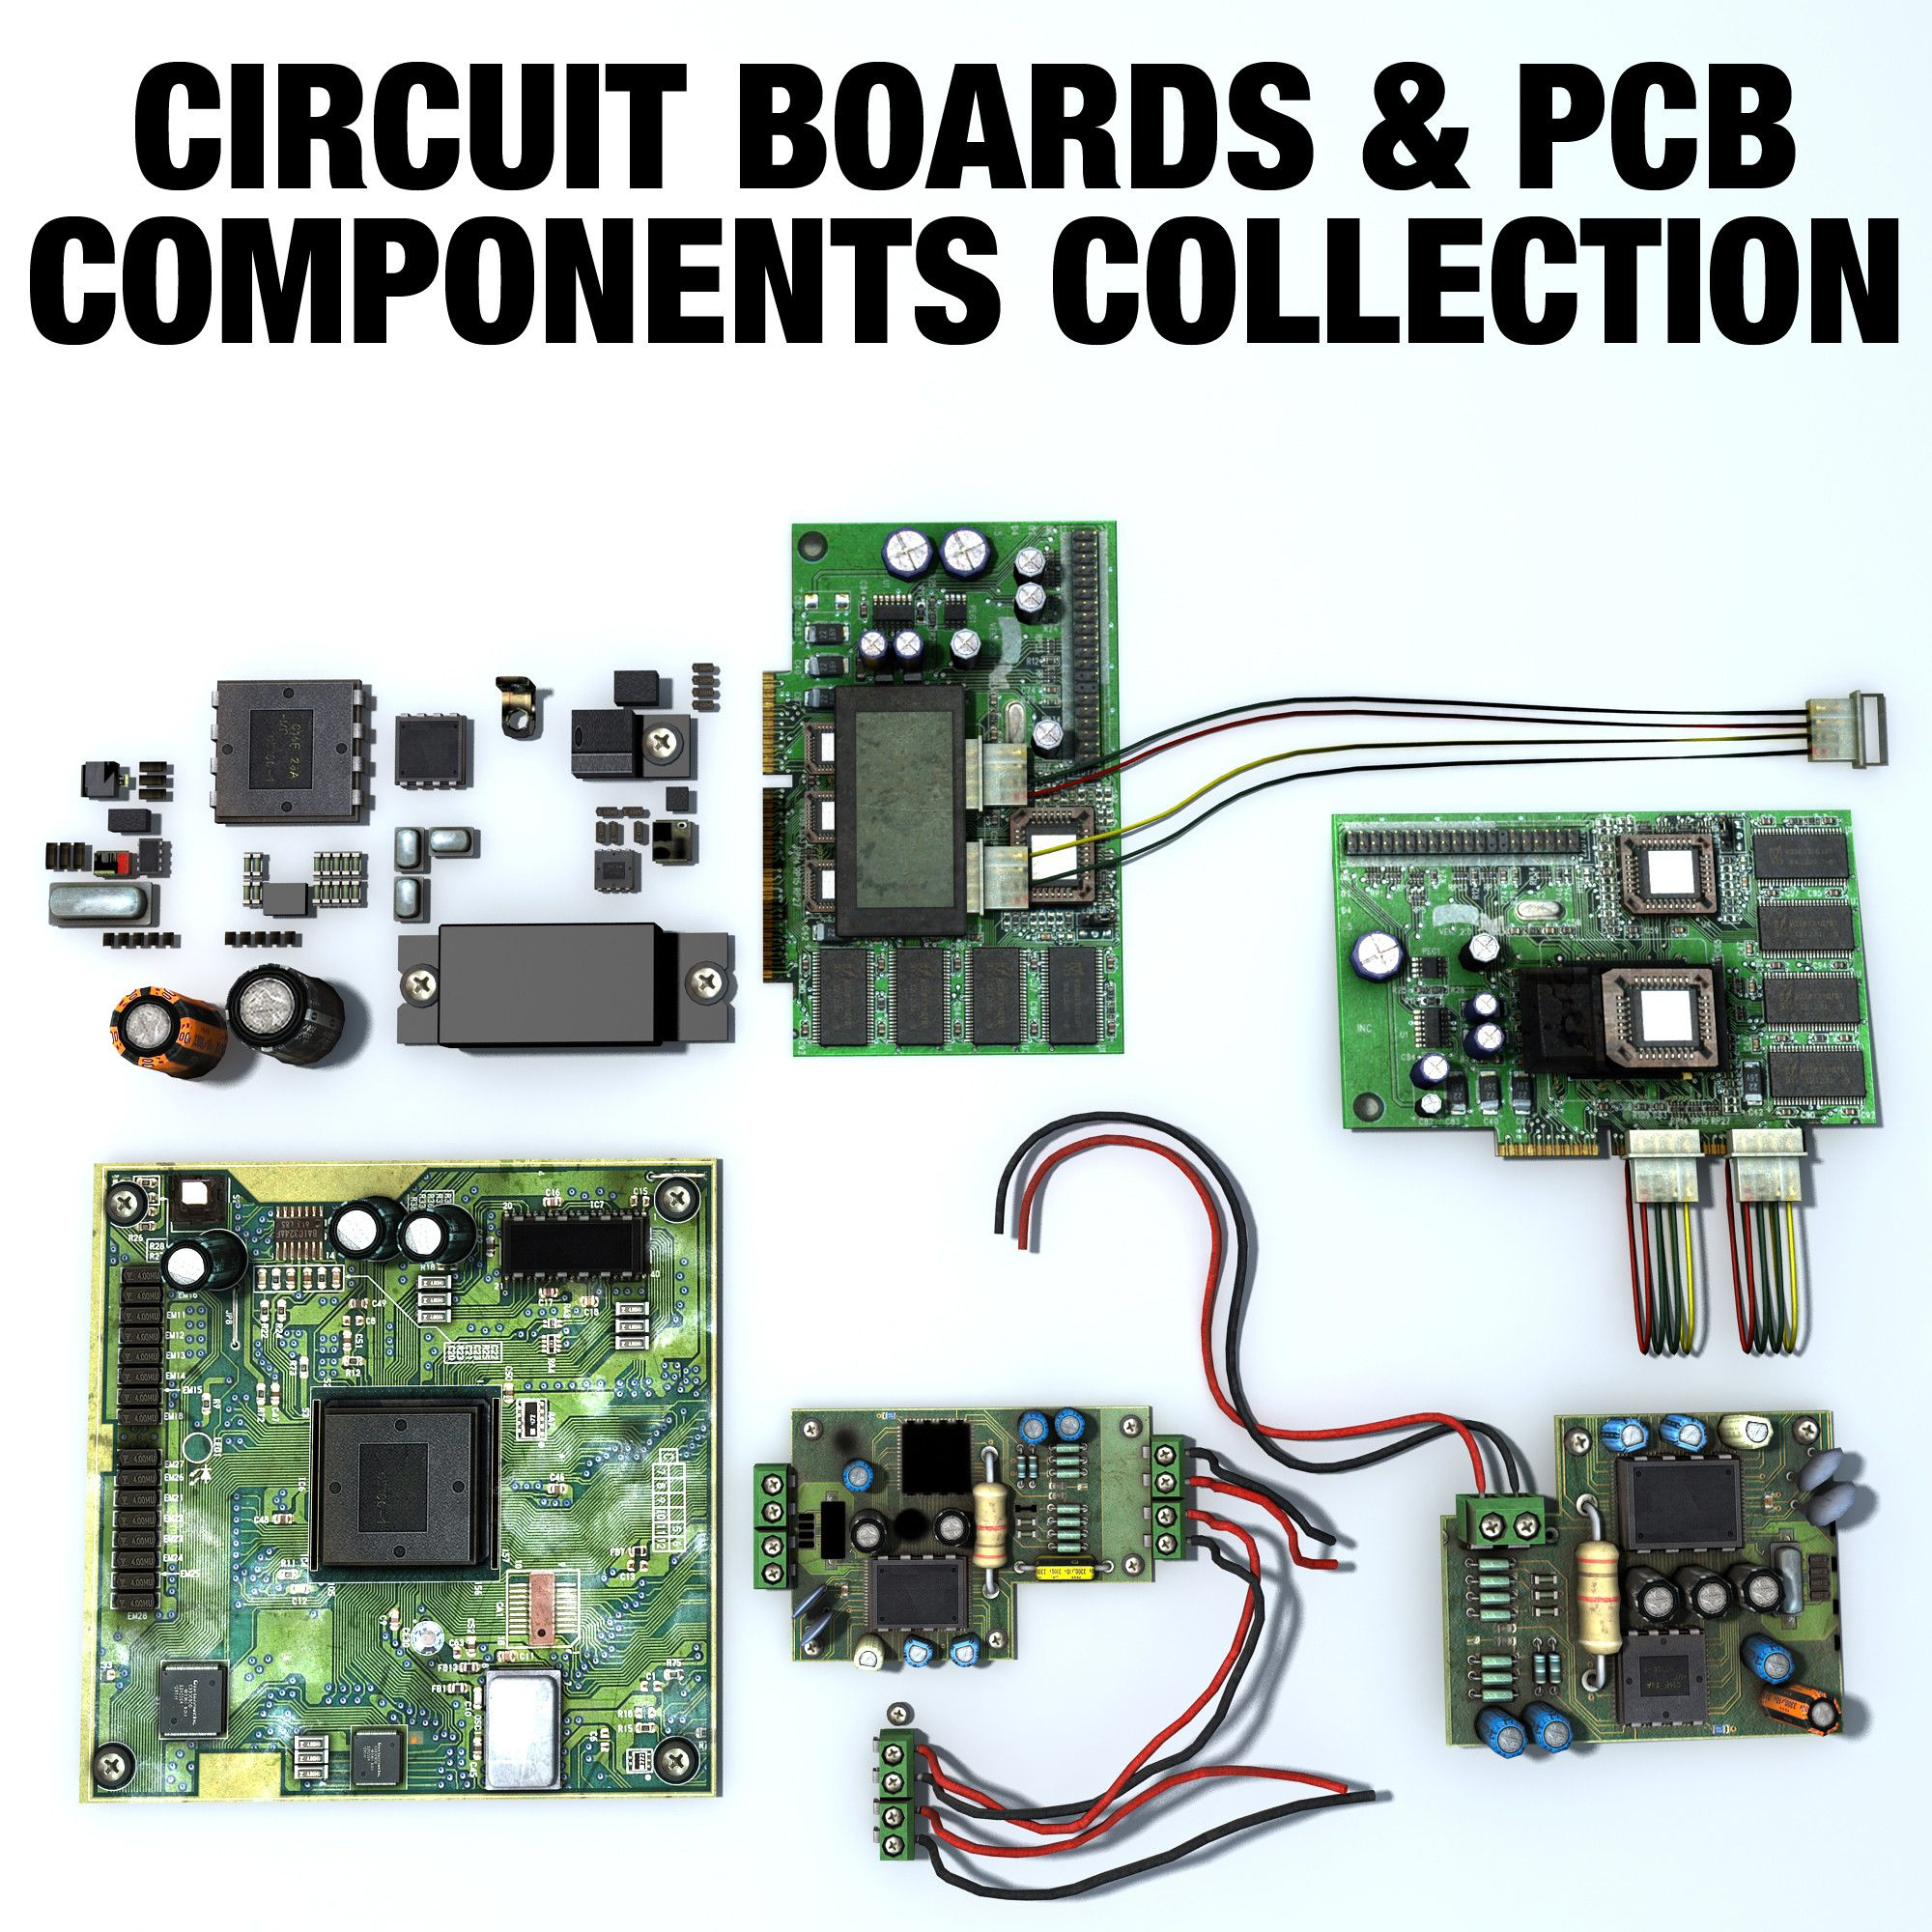 Researchers Create Self Repairing Electrical Circuit Scientists Board Maker Buy Pcb Boardprinted Boardpcb Have Fabricated A Flexible That When Cut